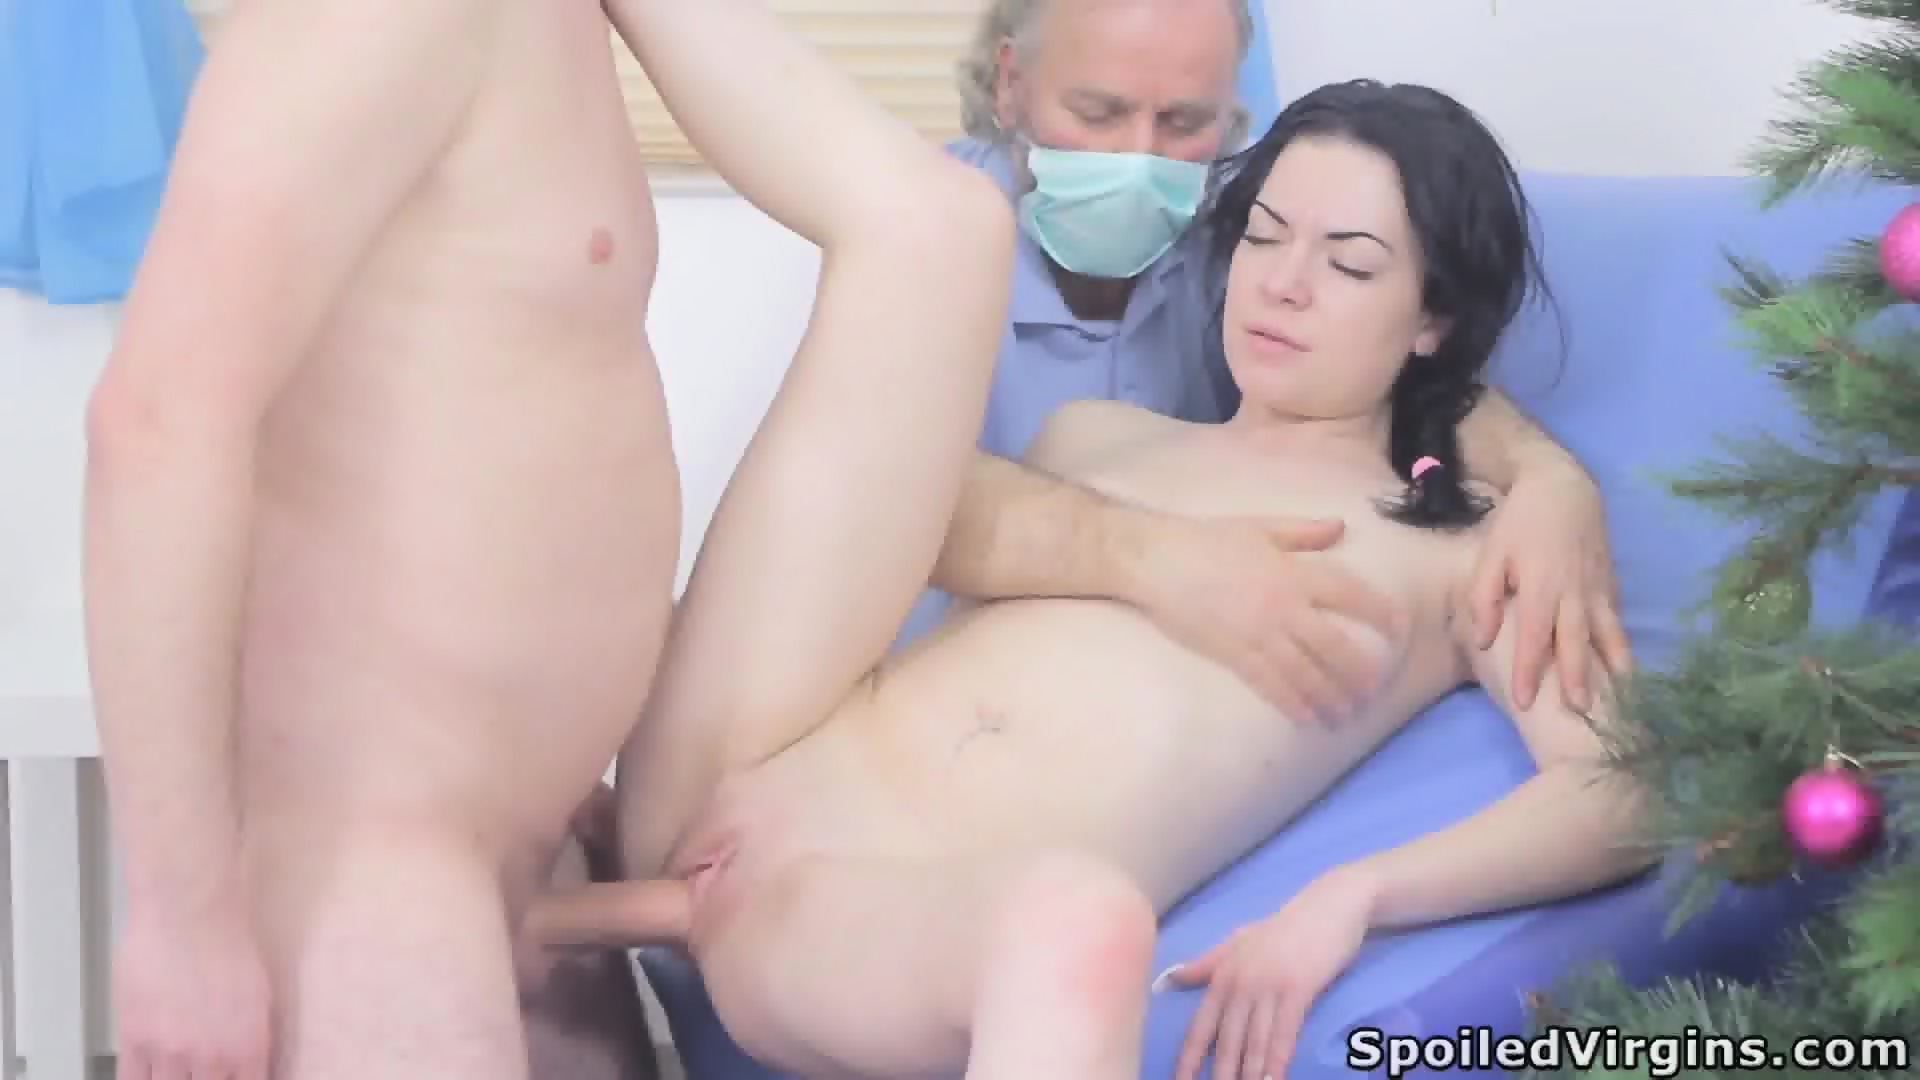 sex video girls